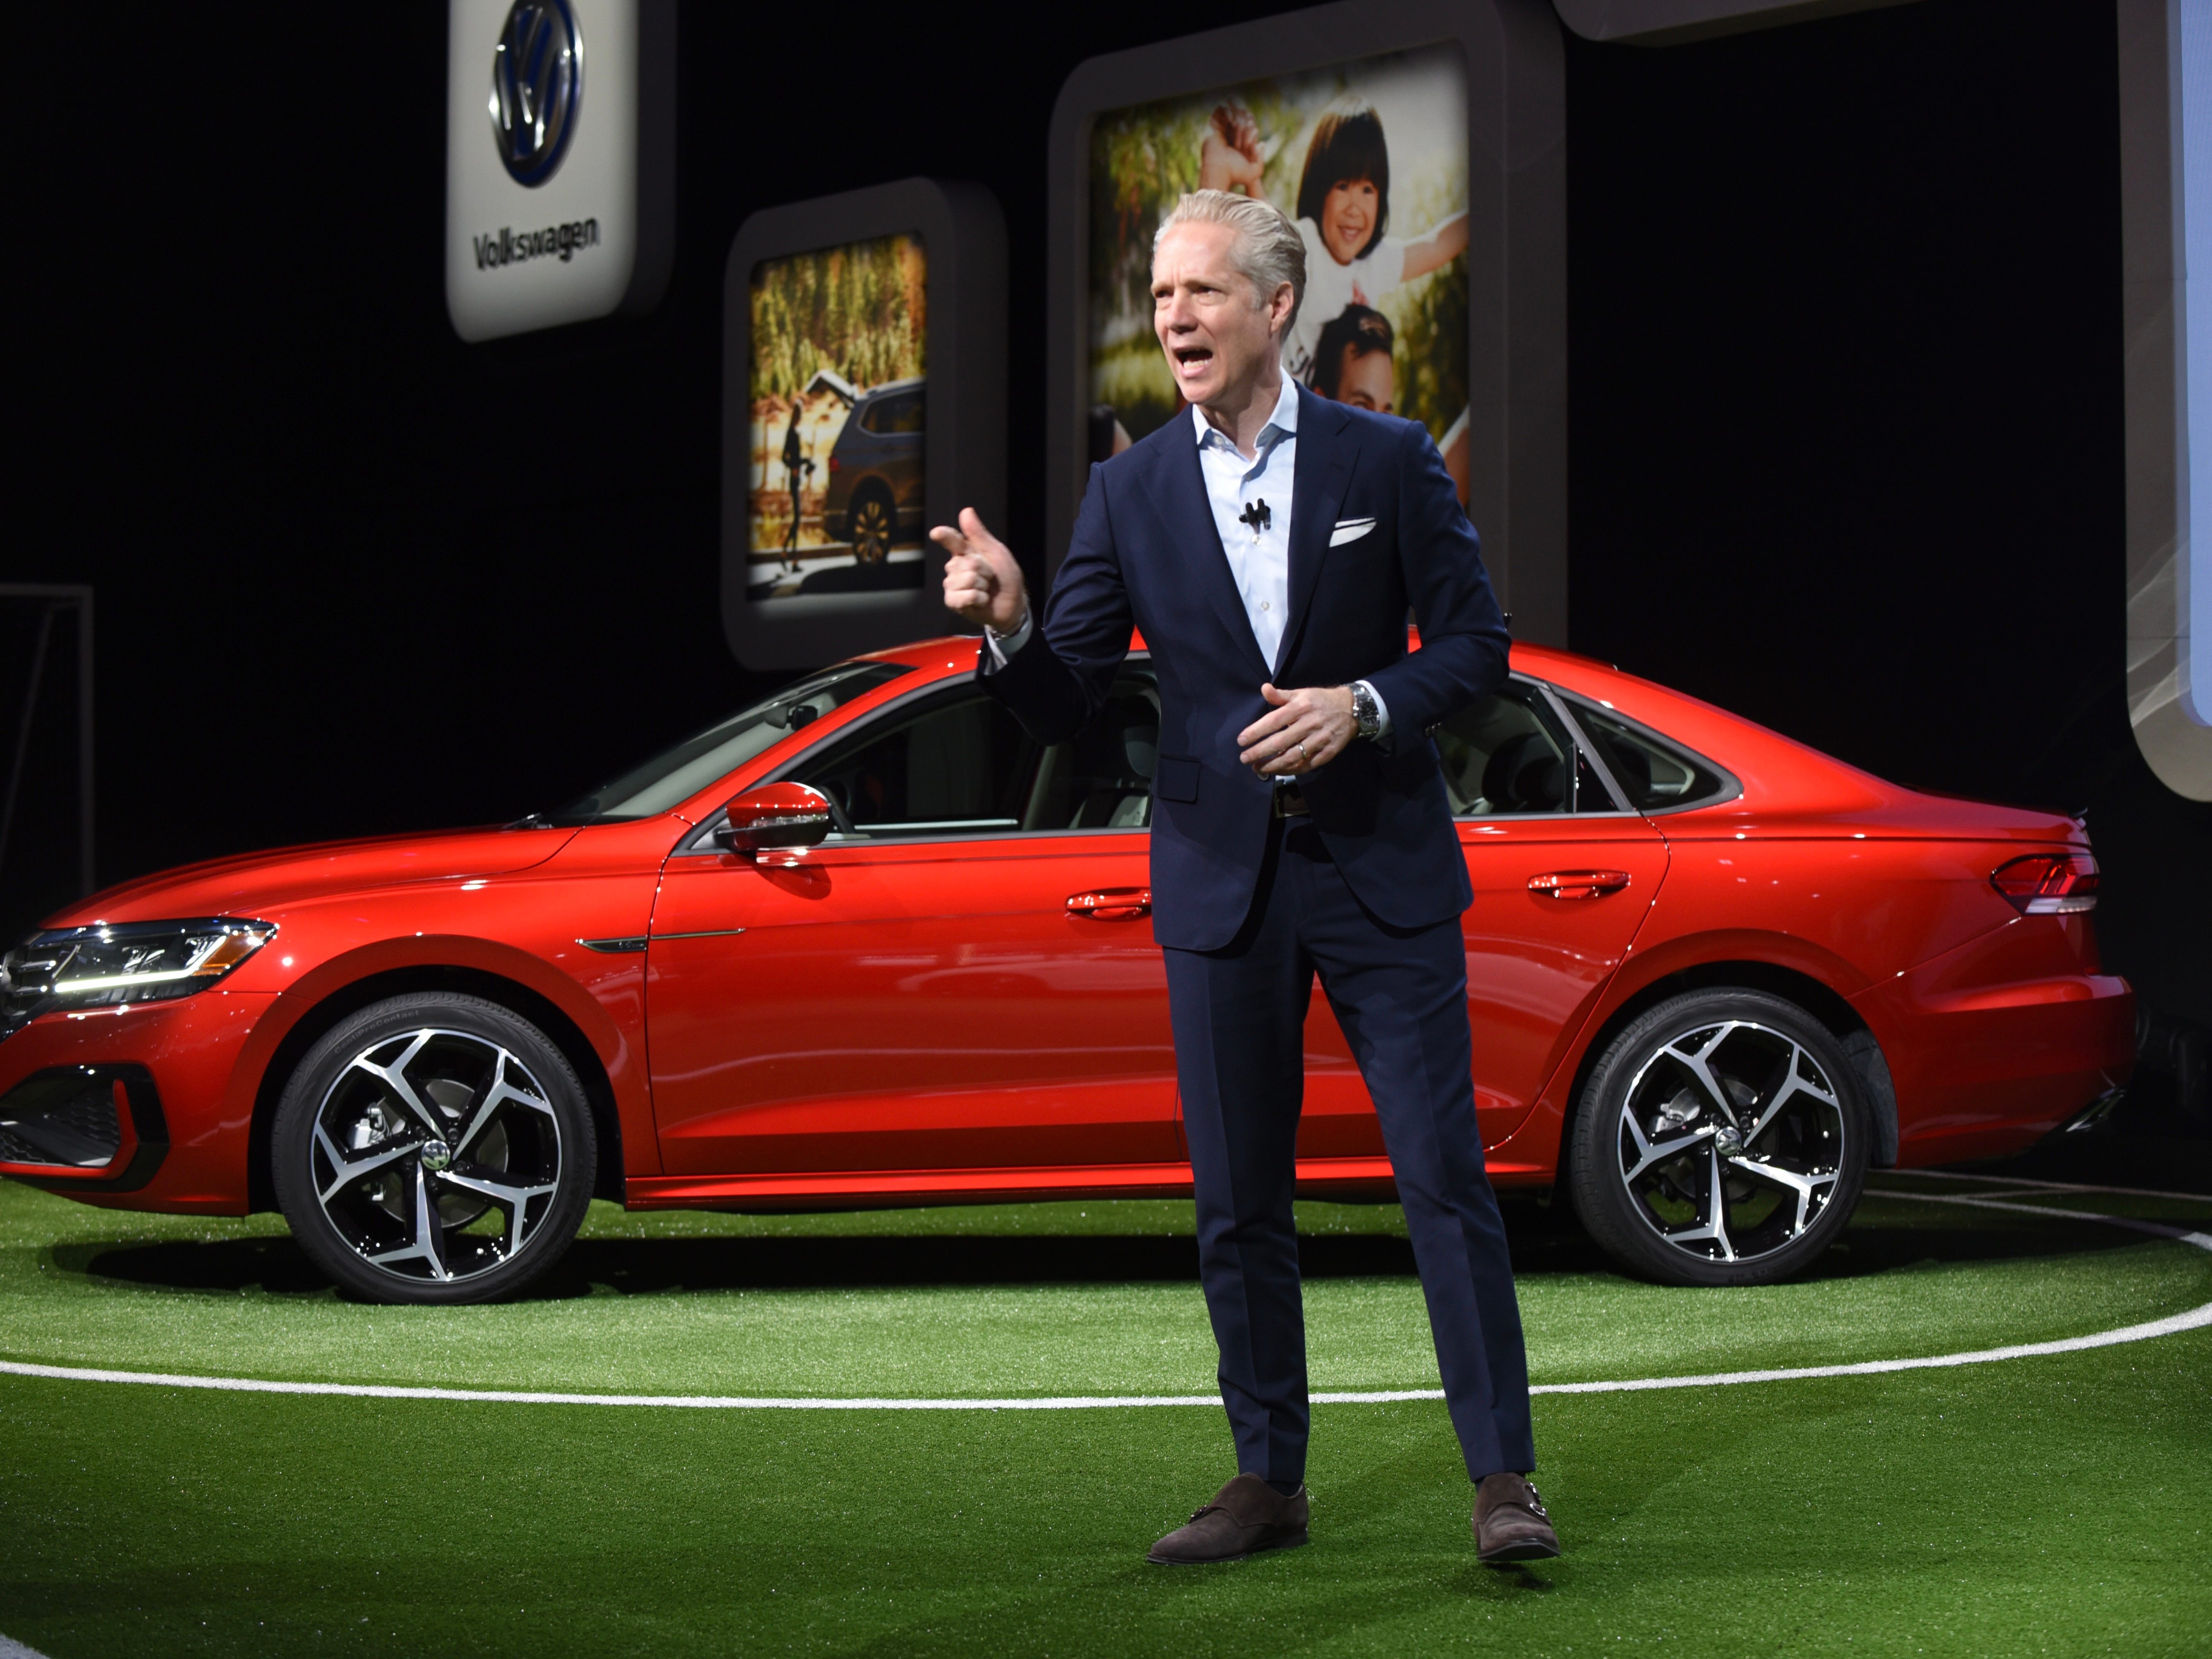 Scott Keogh, CEO and president, Volkswagen Group of America, unveils the new VW Passat at Cobo Center on Monday, Jan. 14, 2019.